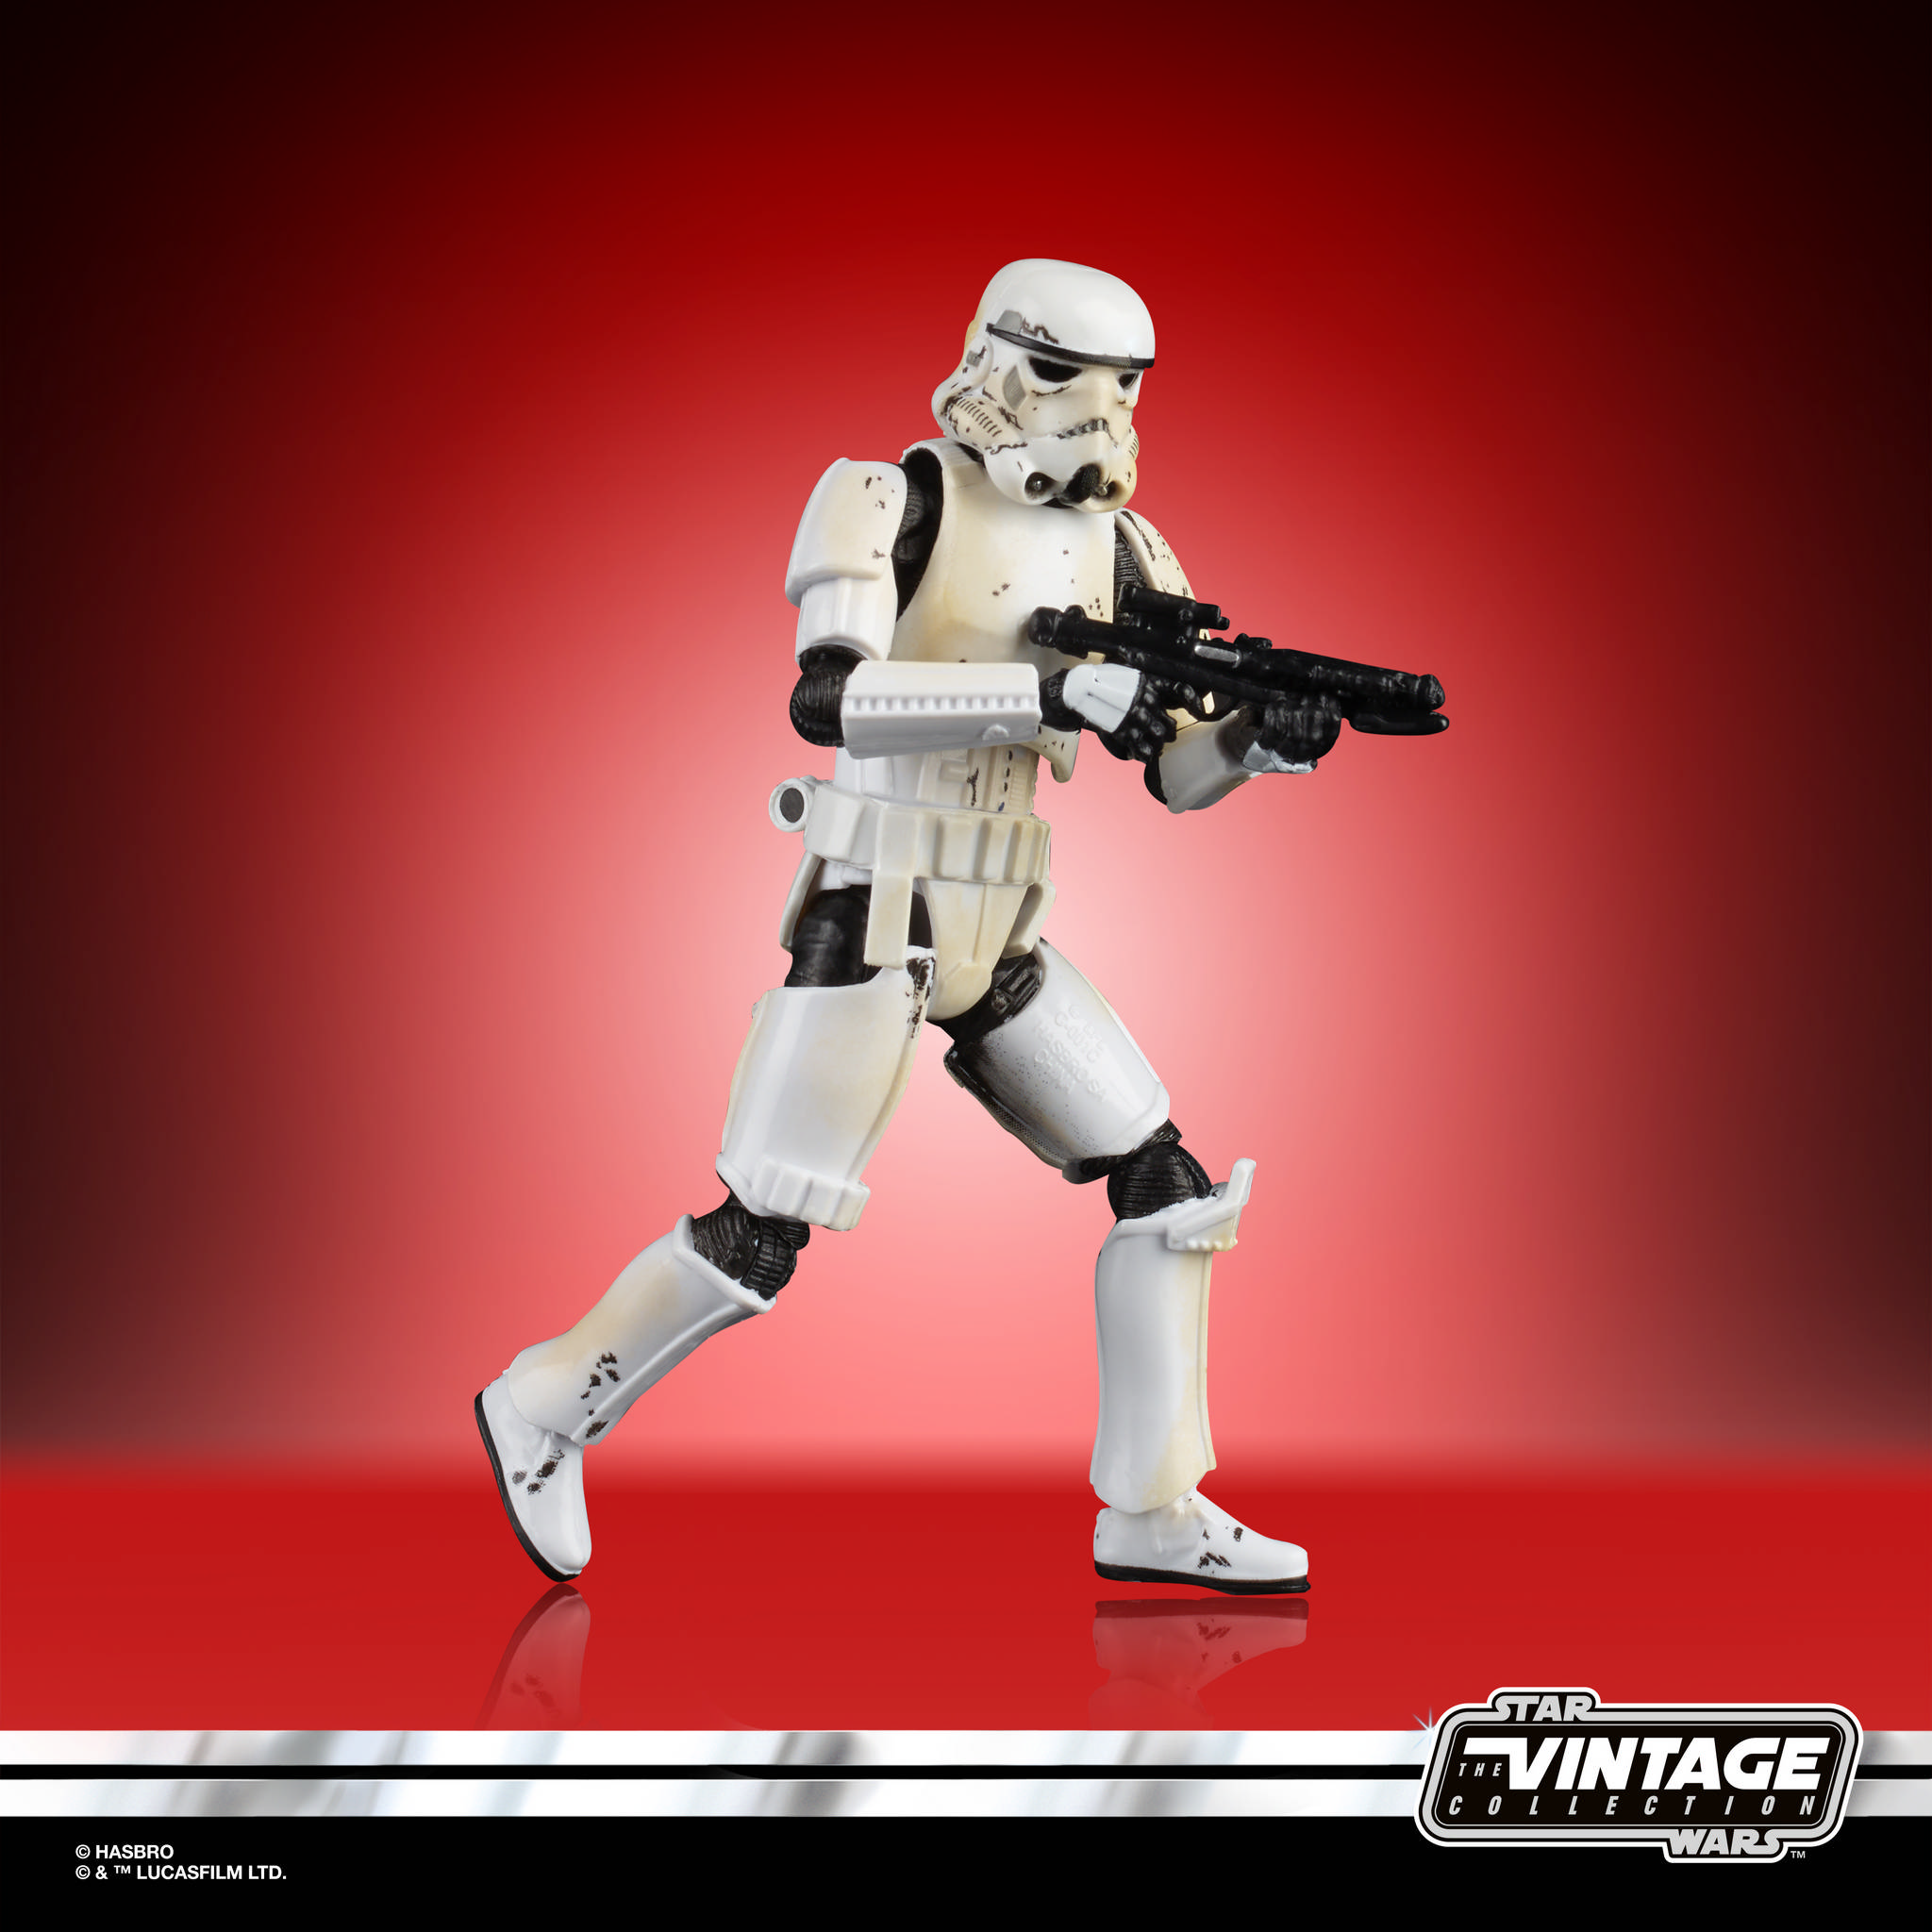 STAR WARS THE VINTAGE COLLECTION 3.75 INCH STORM TROOPER Figure 3